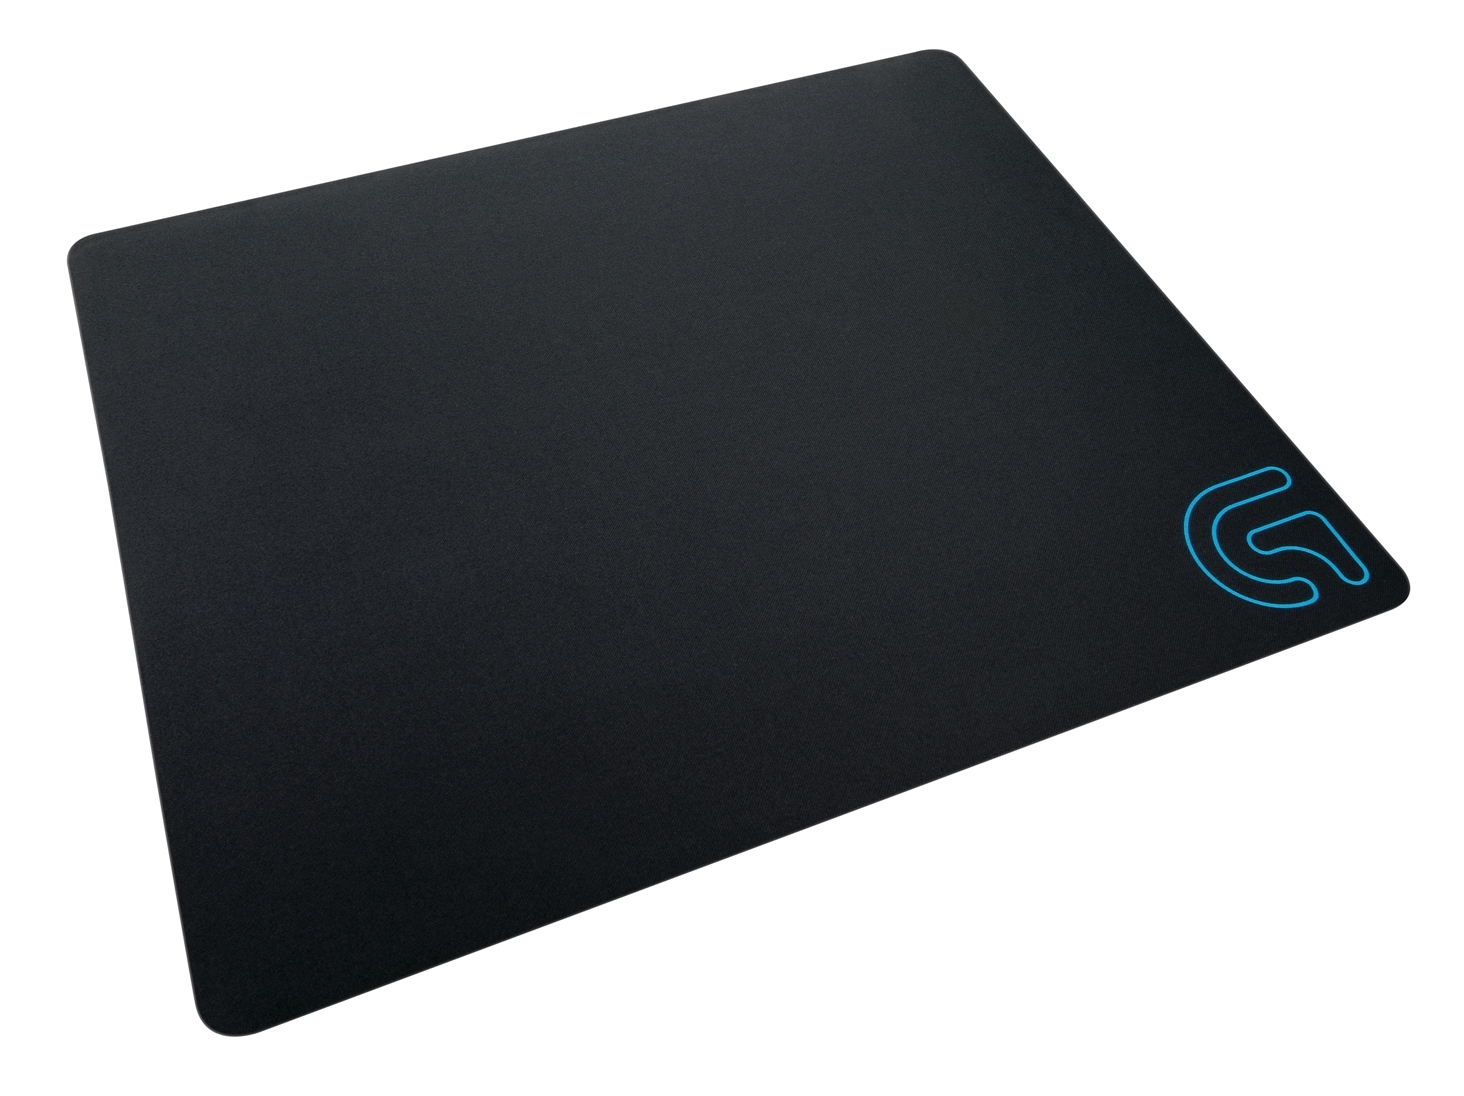 Logitech G240 Gaming Mouse Mat for  image